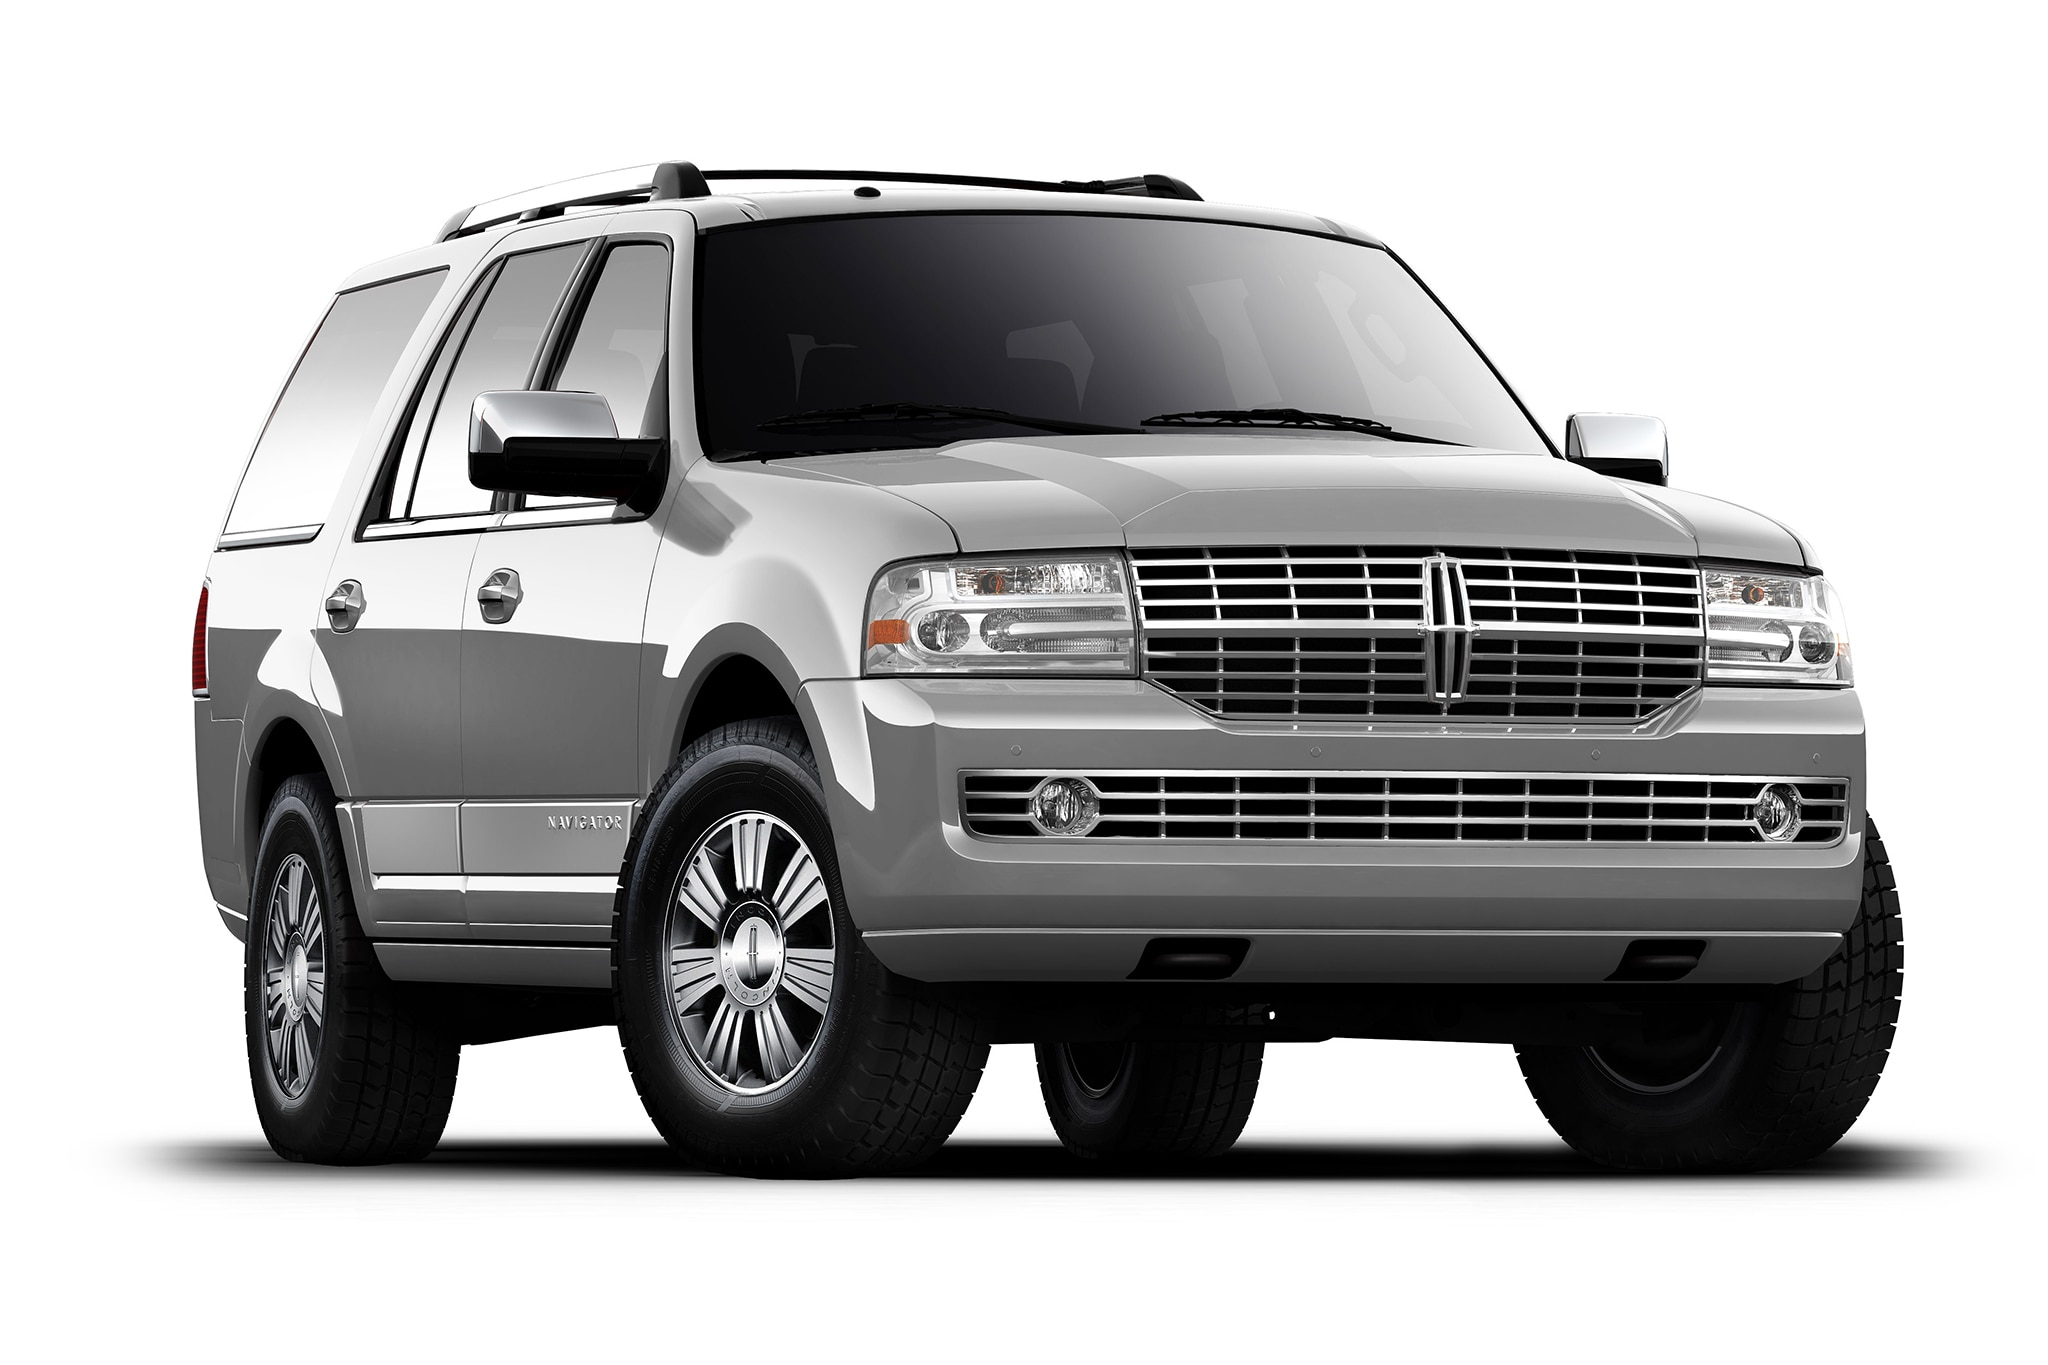 rumored ford expedition to retain v 8 power navigator going ecoboost v 6. Black Bedroom Furniture Sets. Home Design Ideas